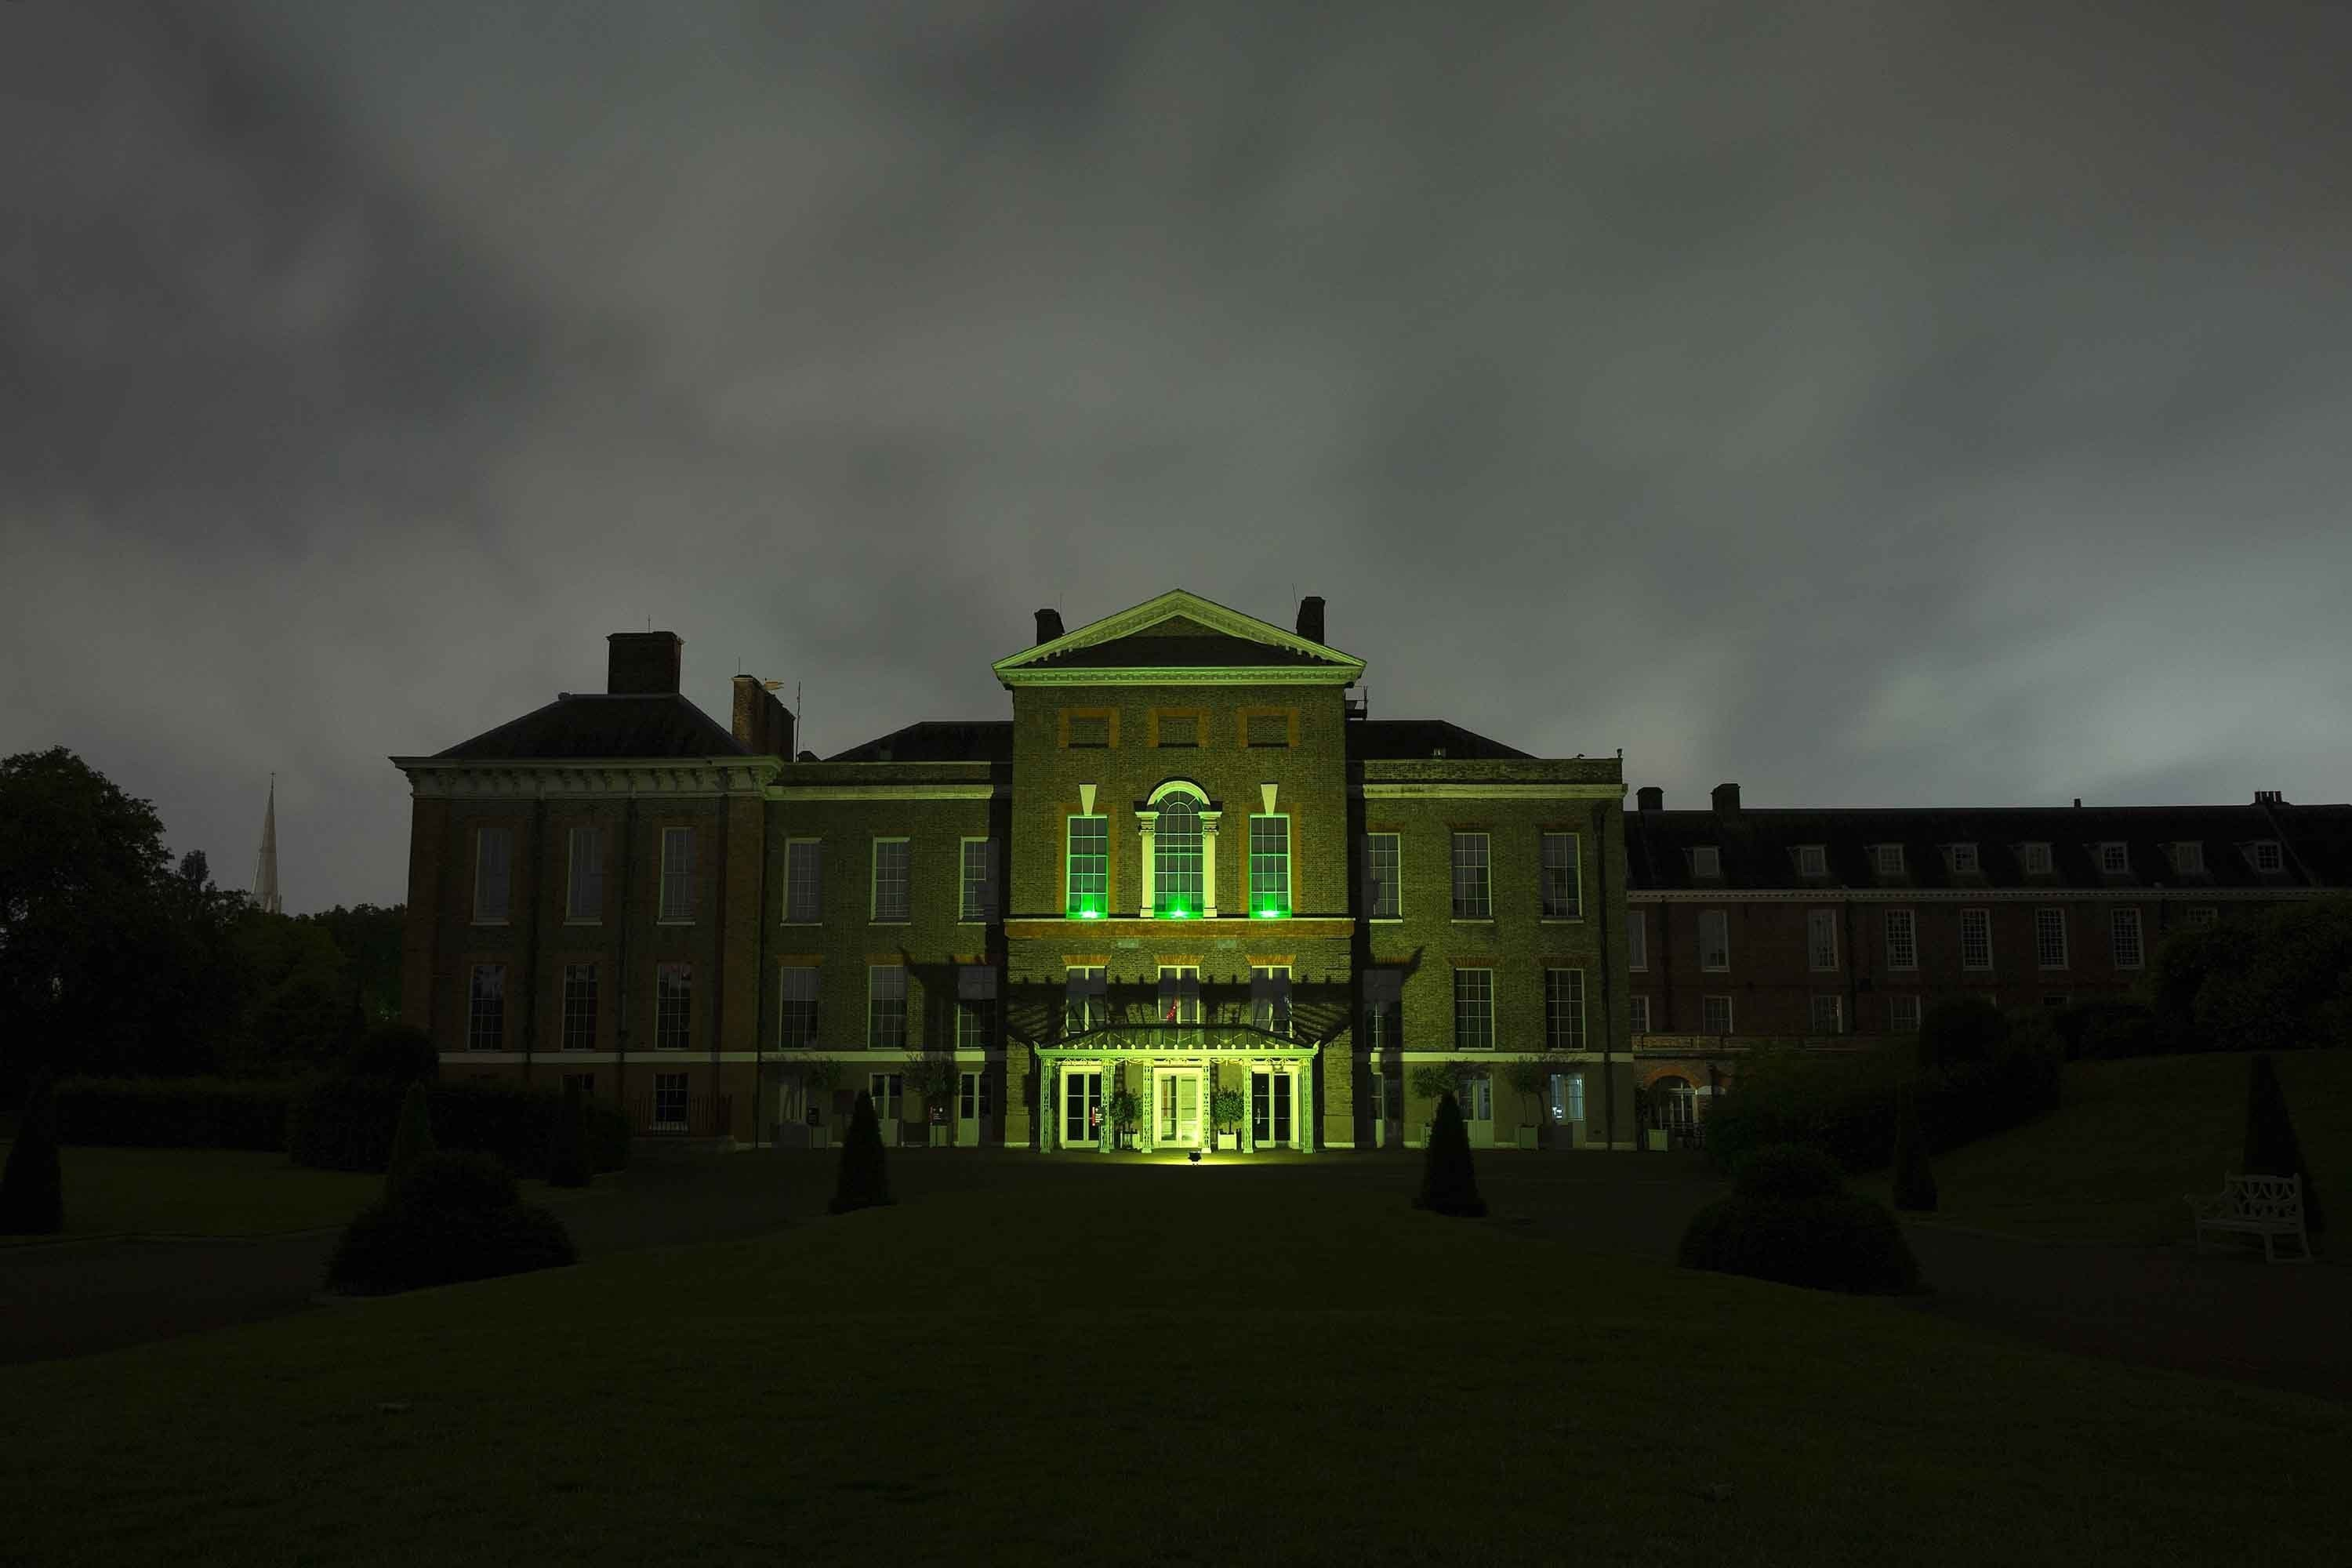 Kensington Palace's East facade is lit up in green to show support for survivors of the fire.